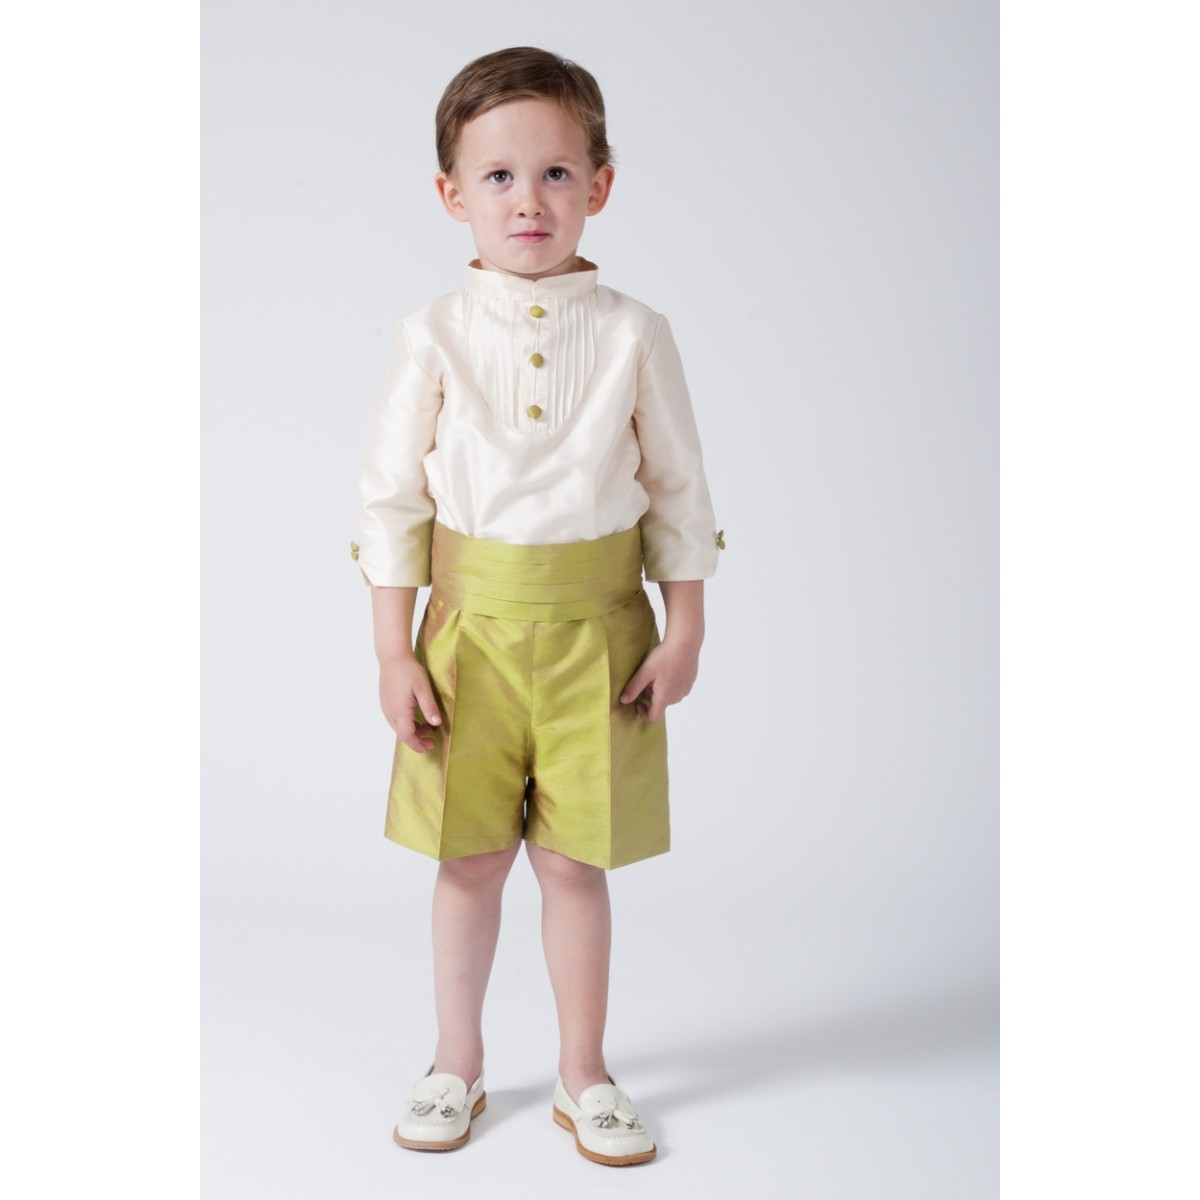 669e1ad9a5 Boy Ring bearer outfit. Ivory silk with green apple shorts ...